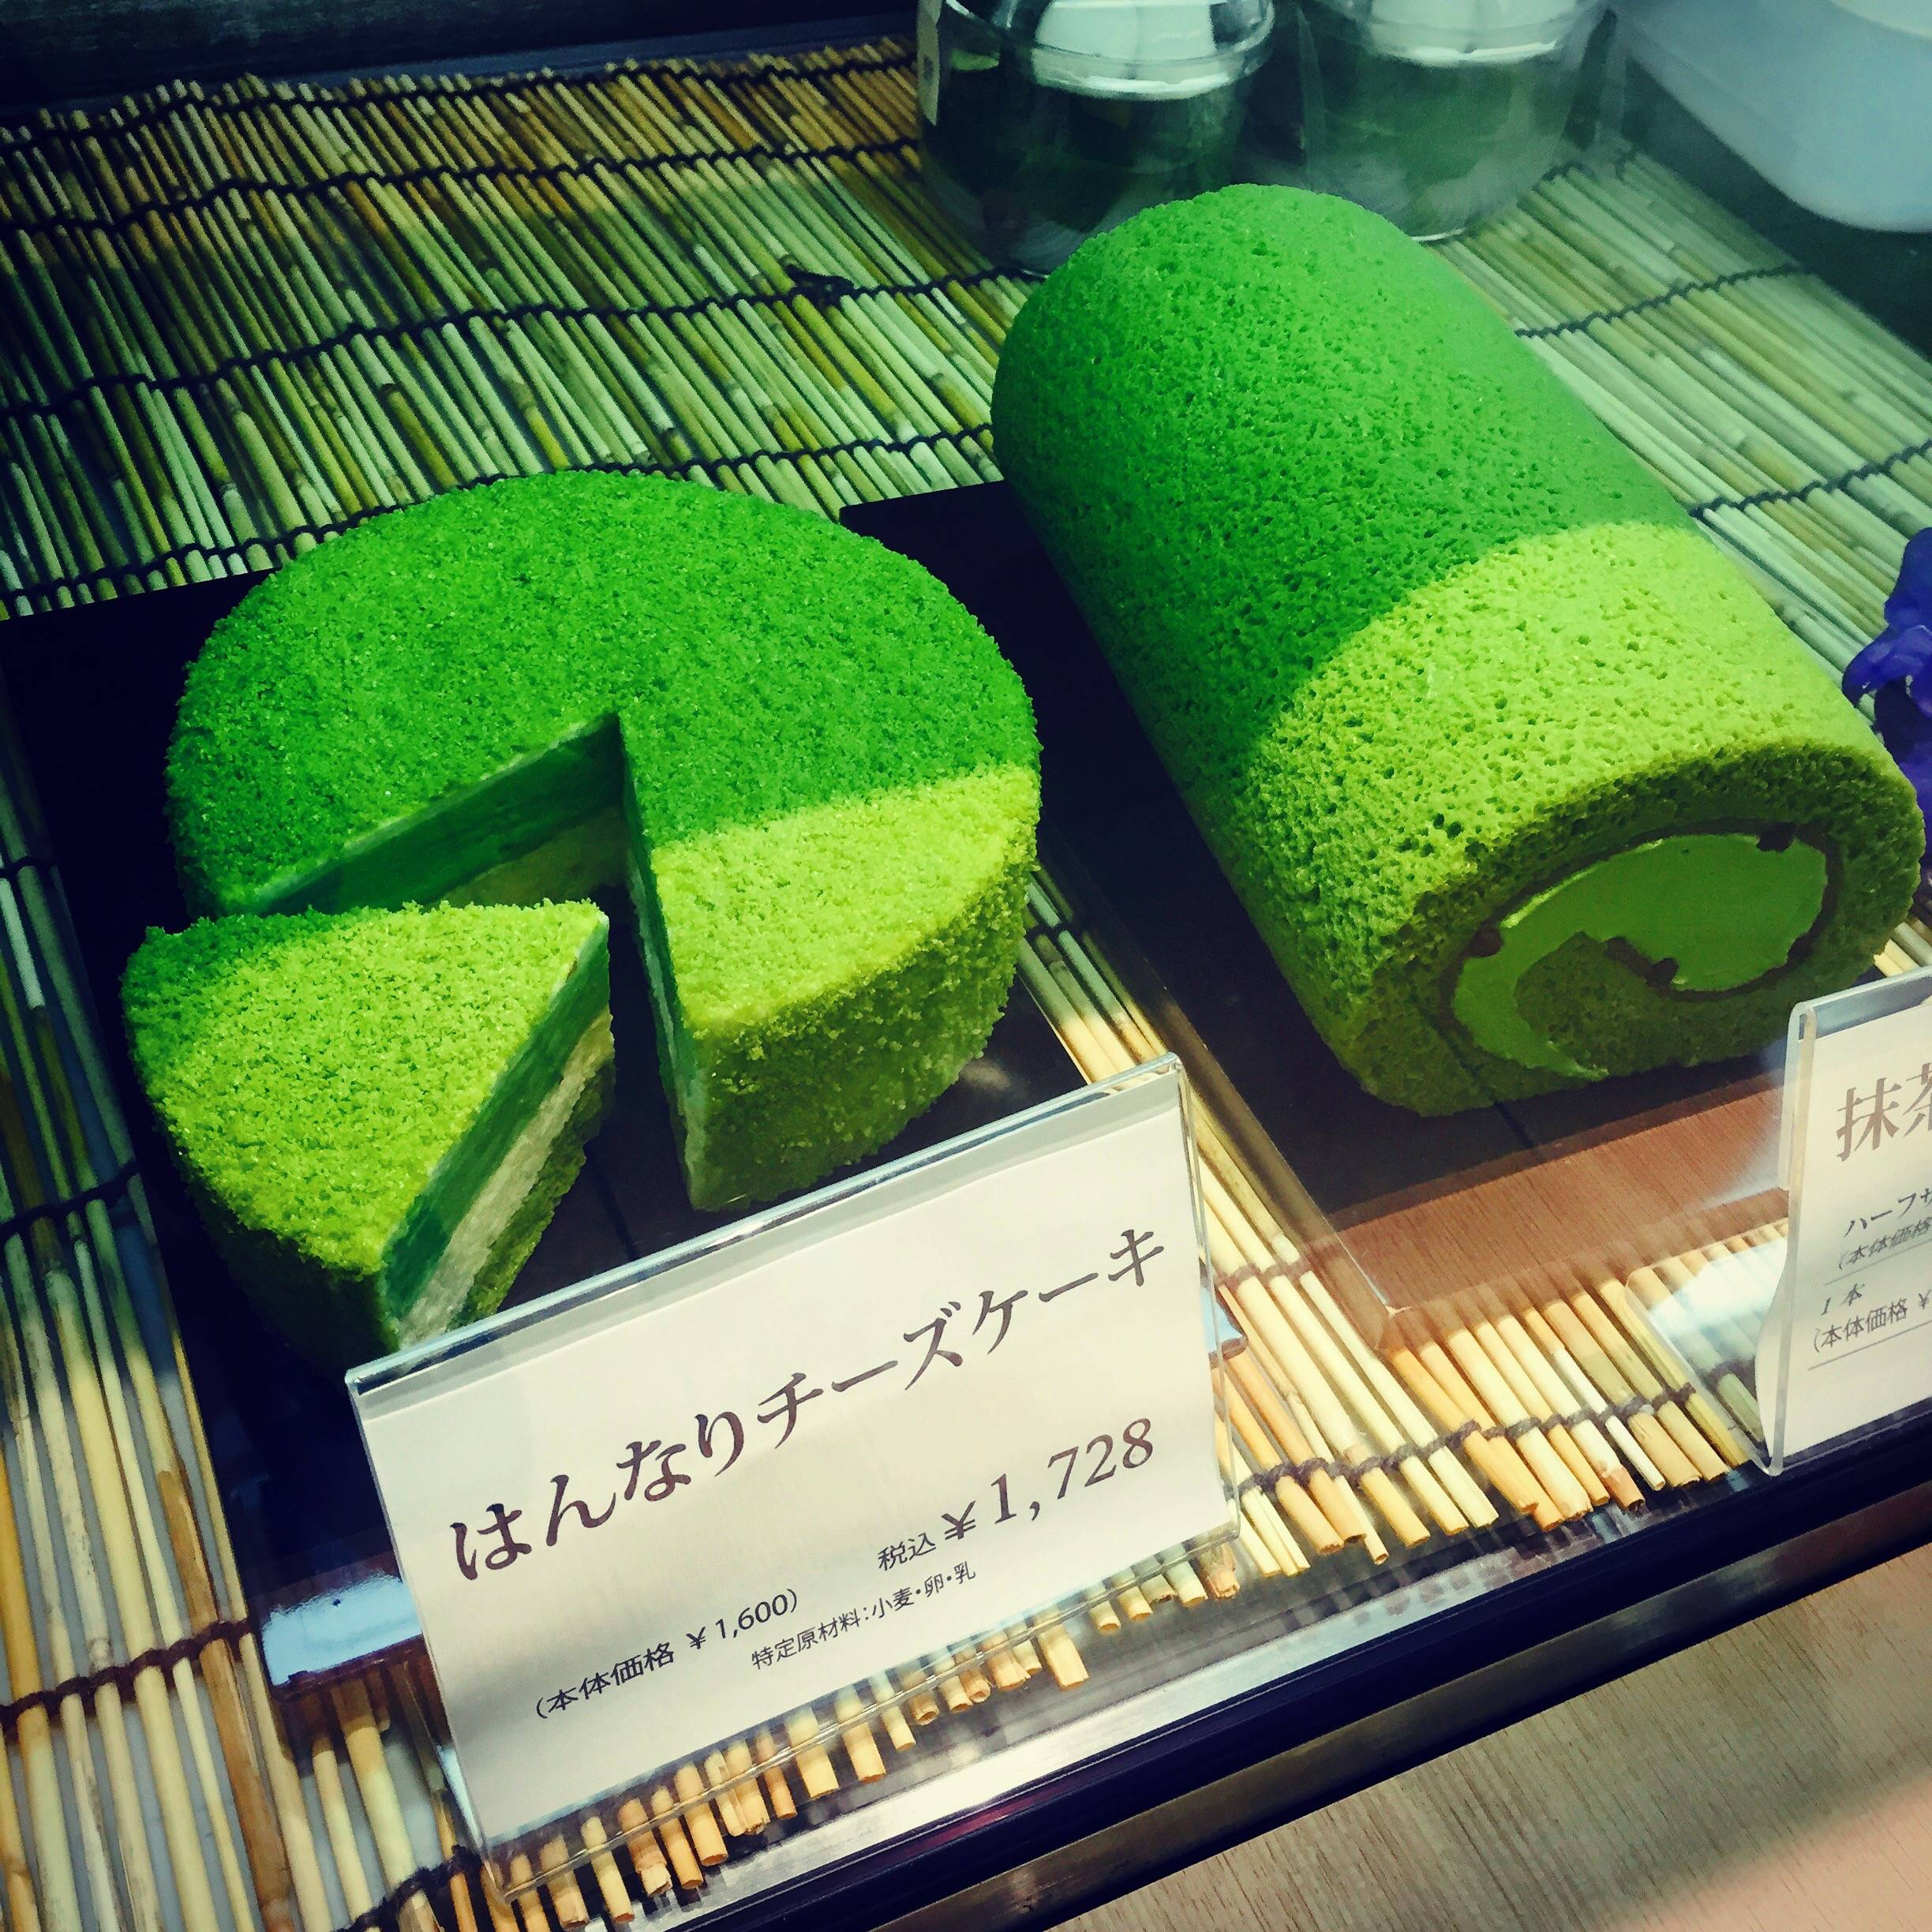 ab3 matcha green tea cakes in tokyo food porn know your meme